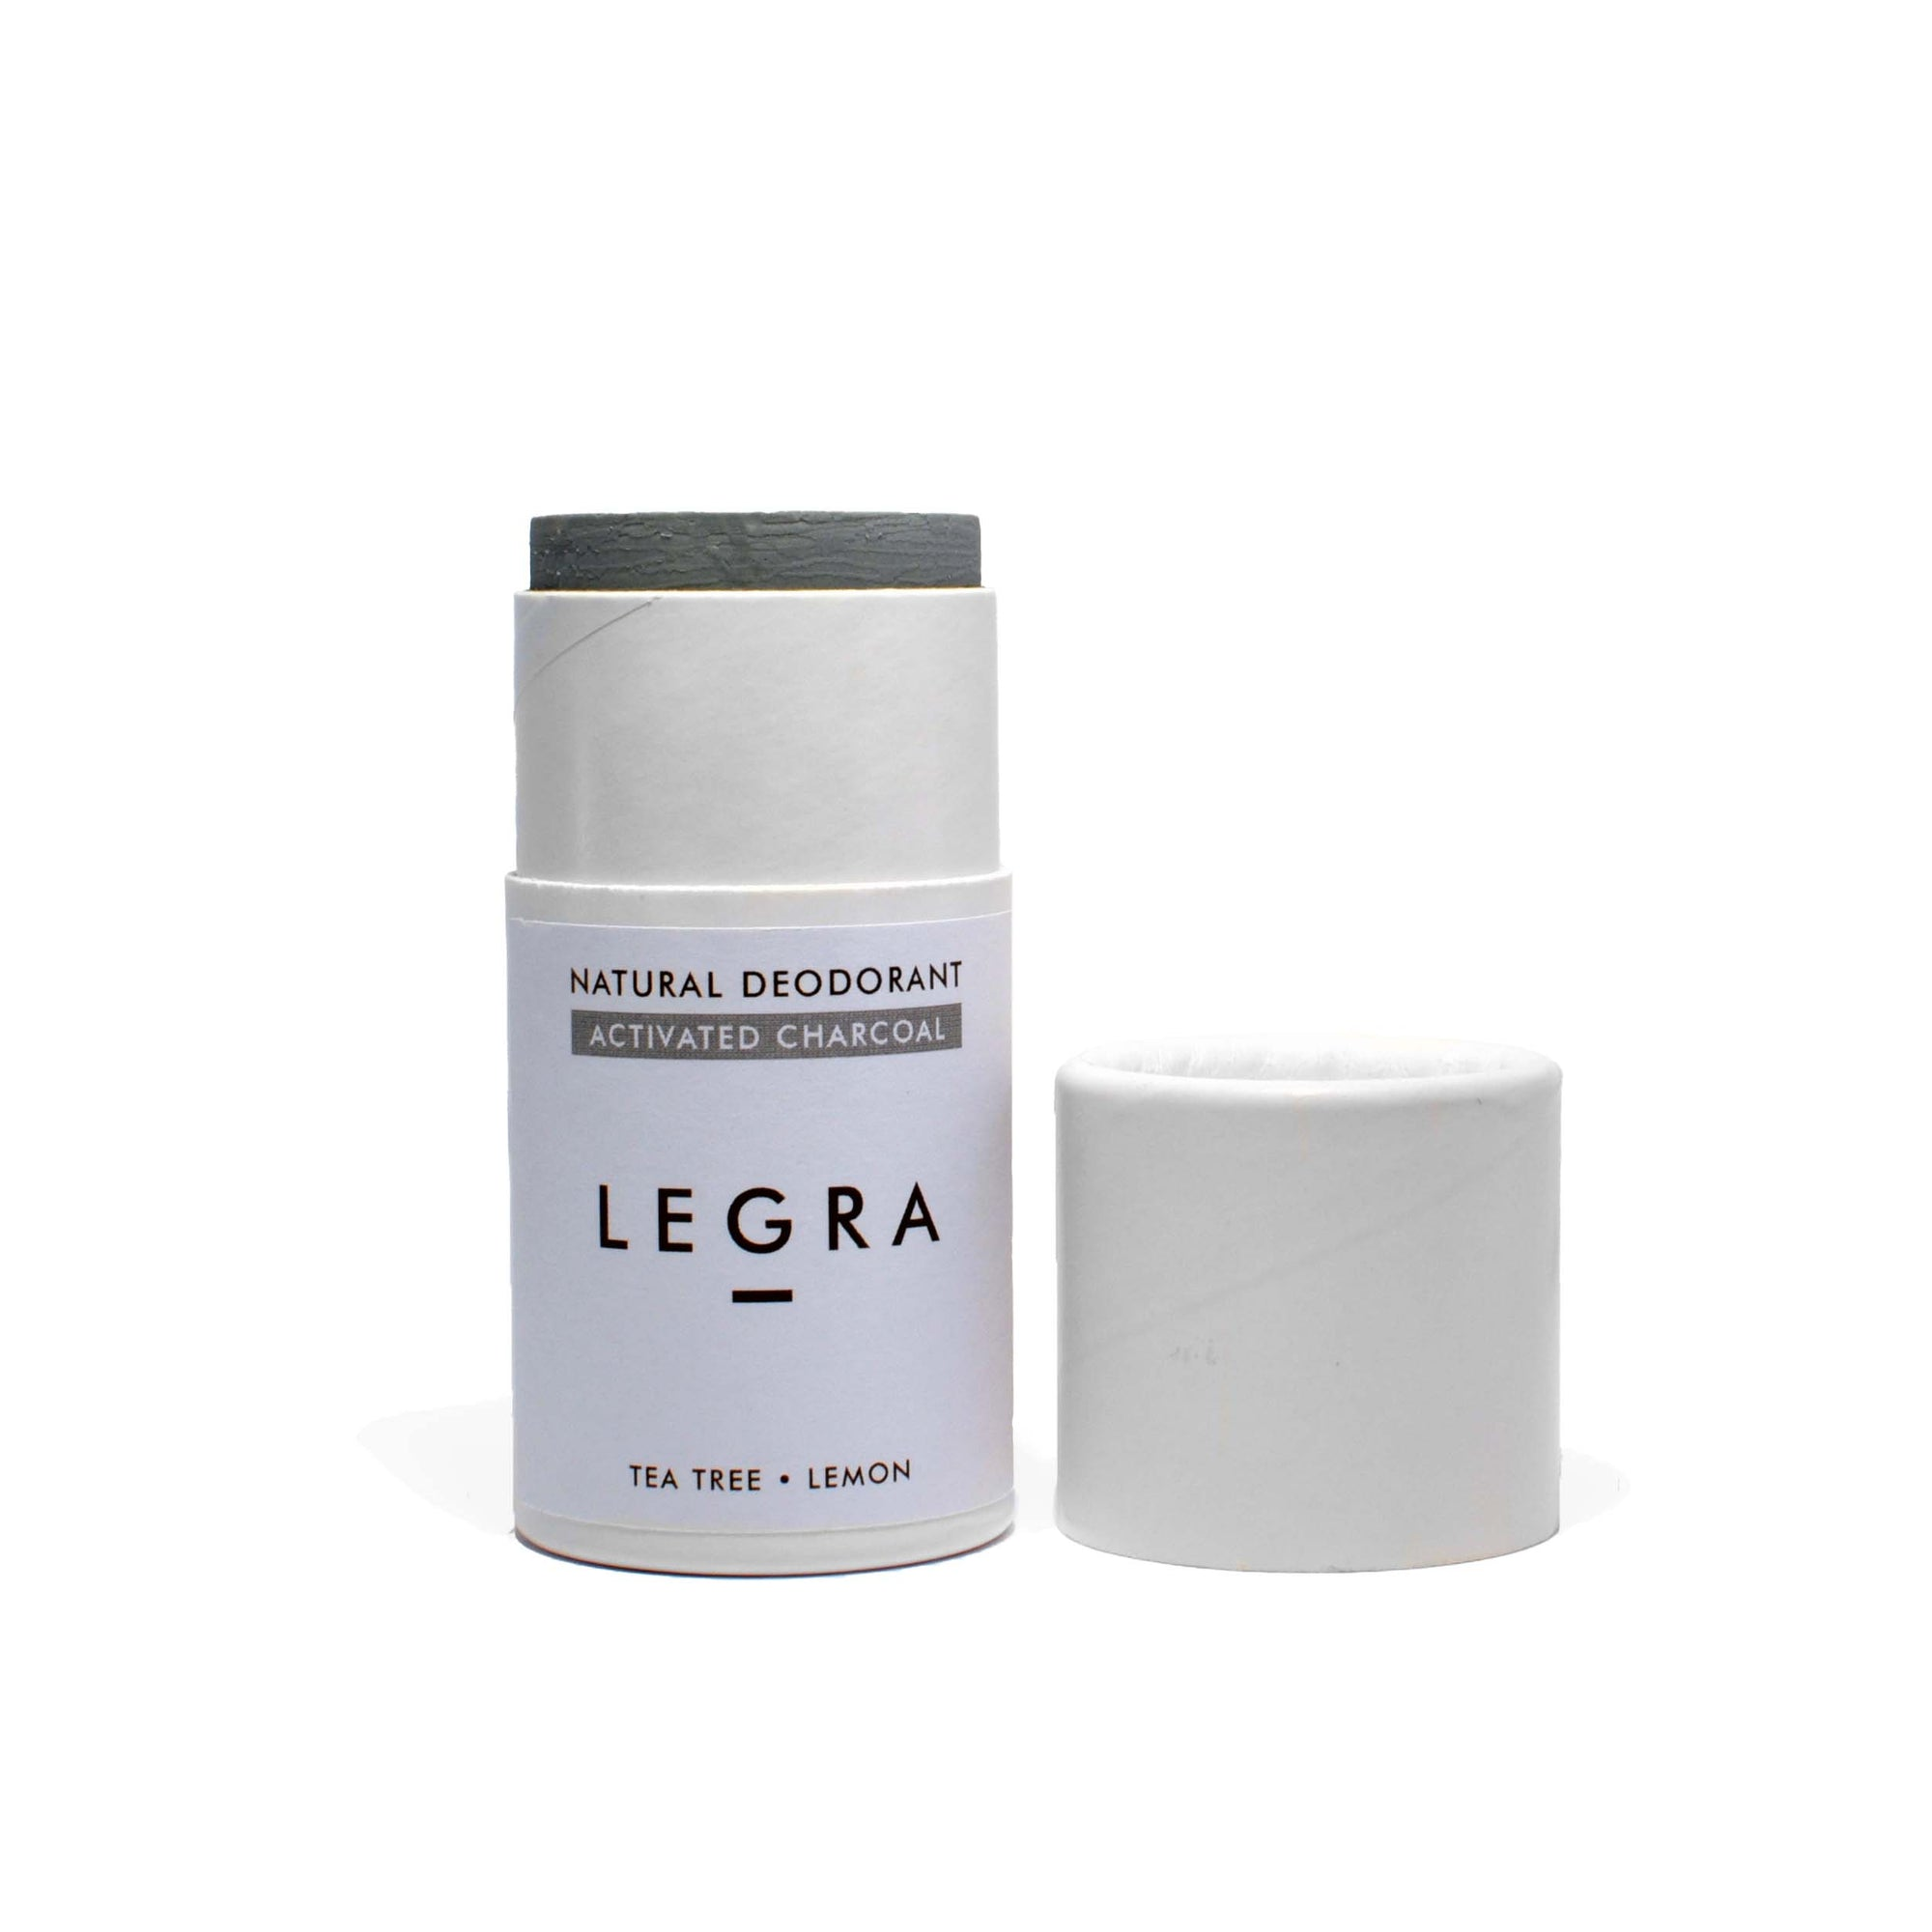 LEGRA - Bamboo Activated Charcoal, Tea Tree & Lemon - Natural Deodorant Stick